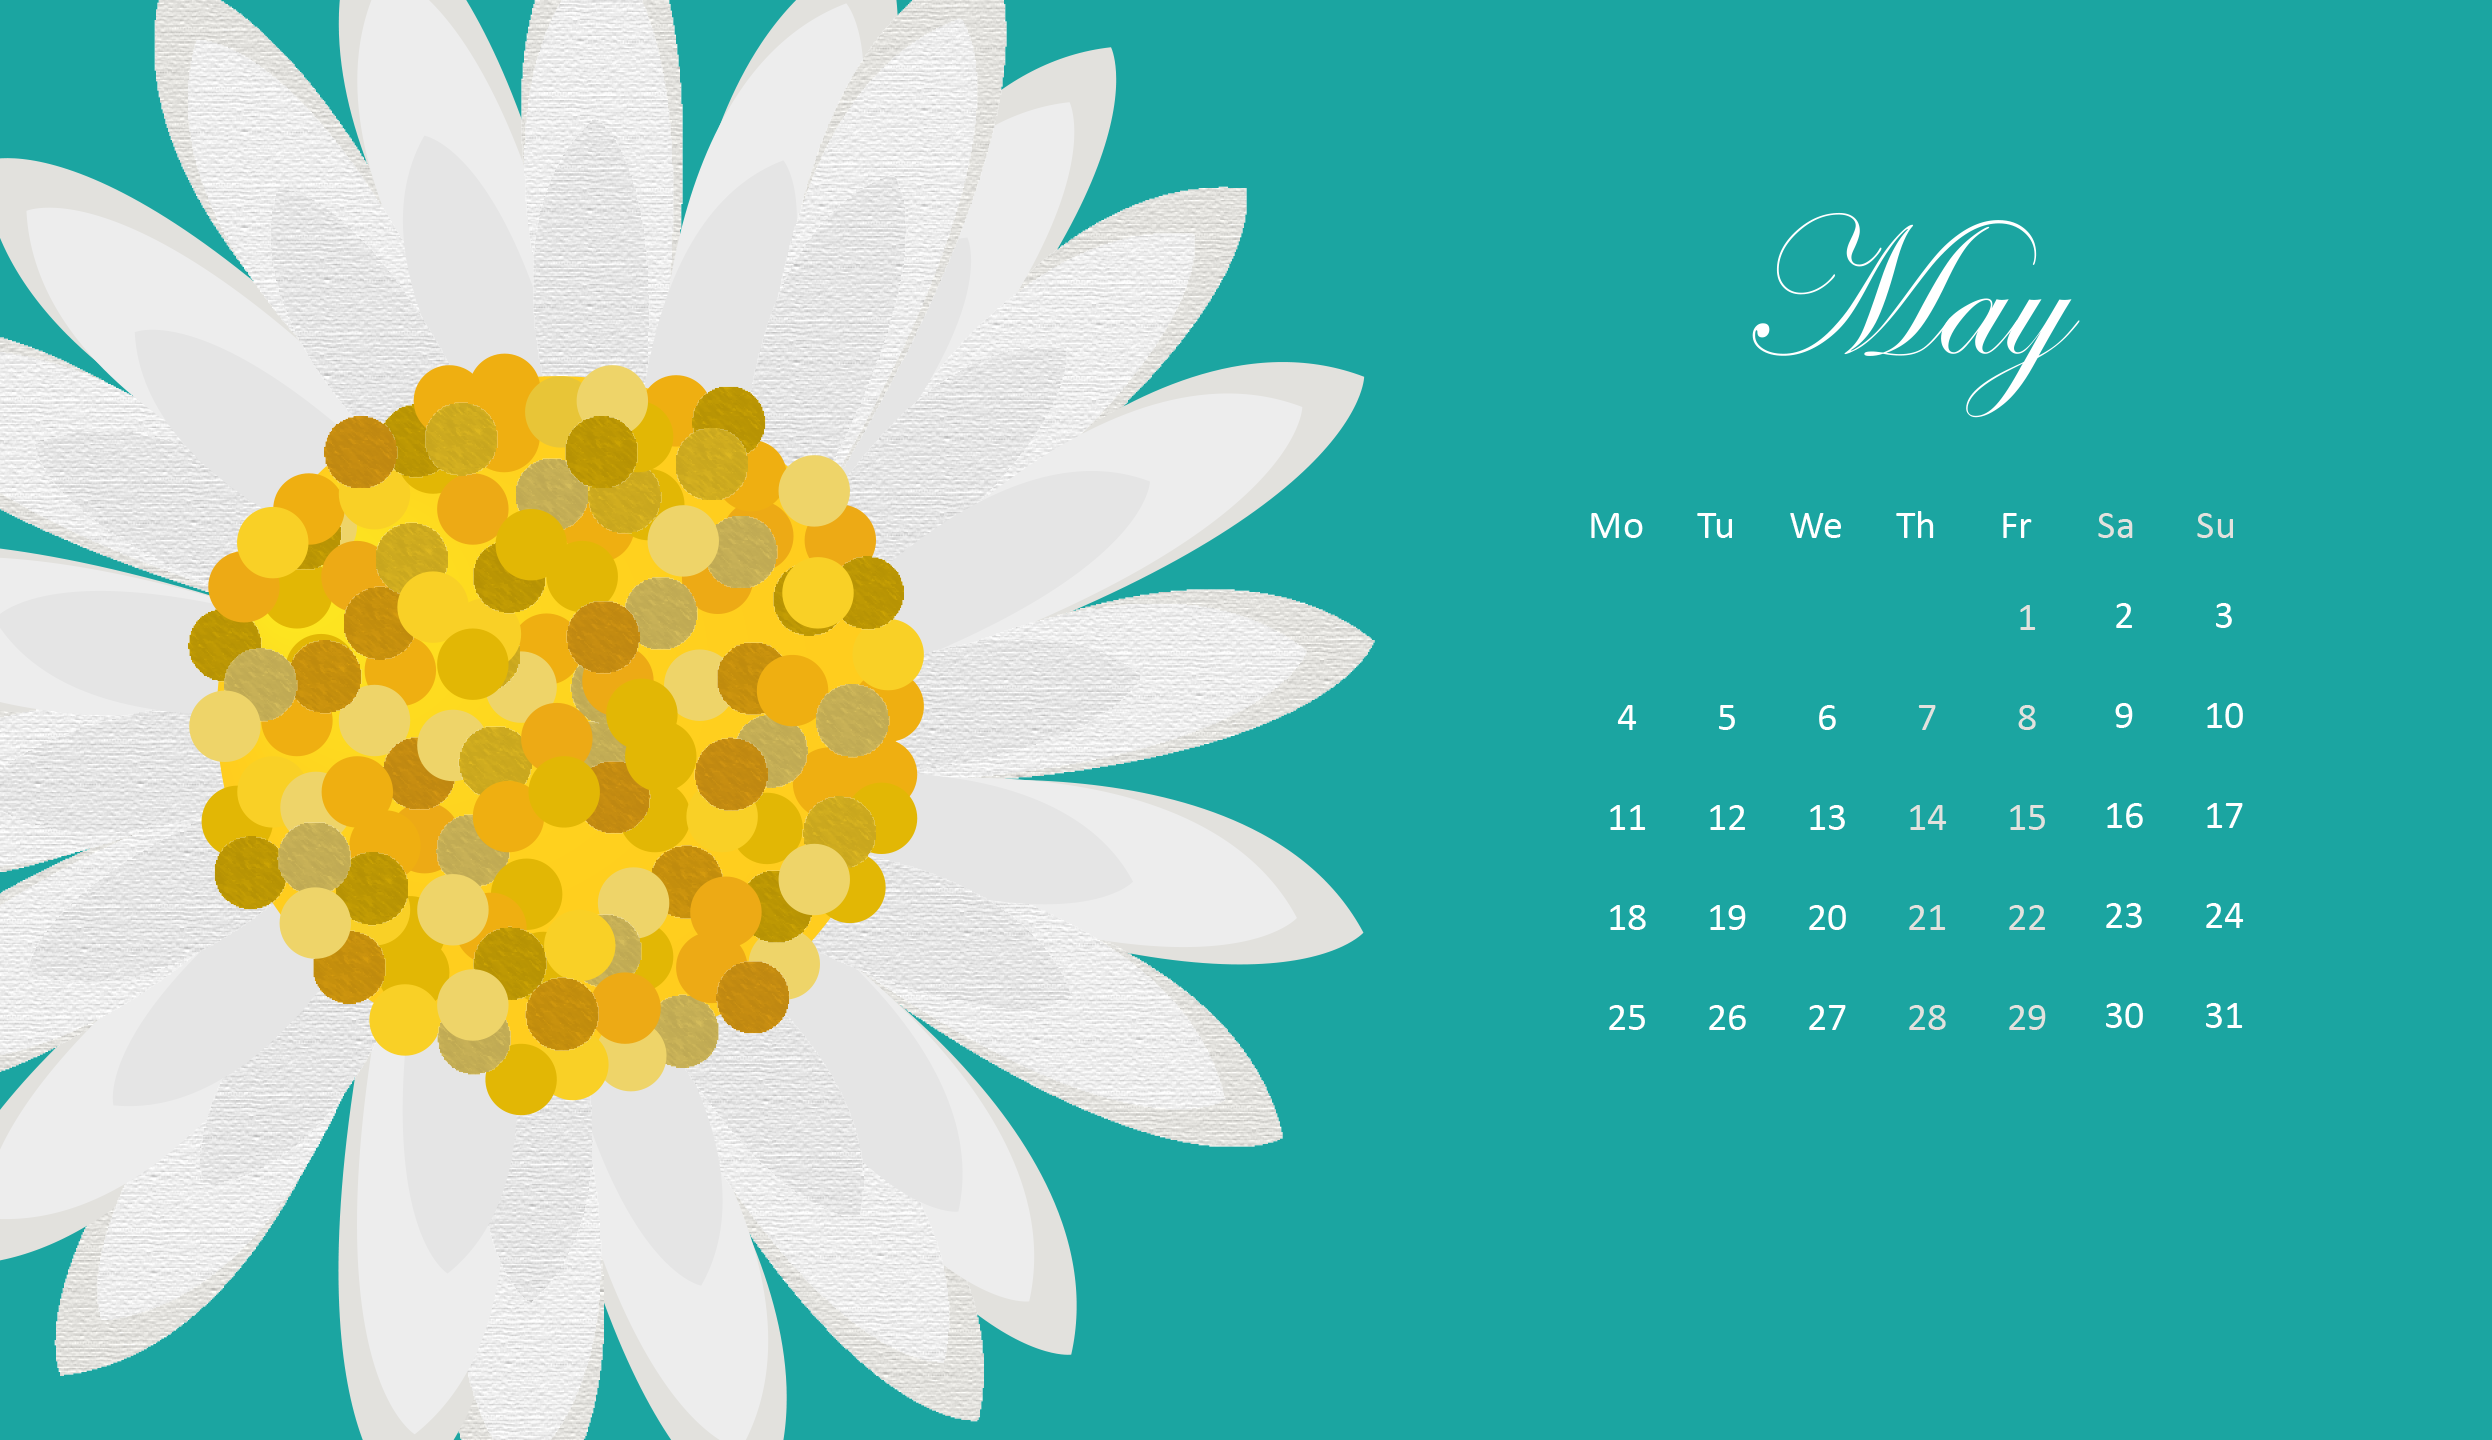 May 2020 Wallpaper Calendar